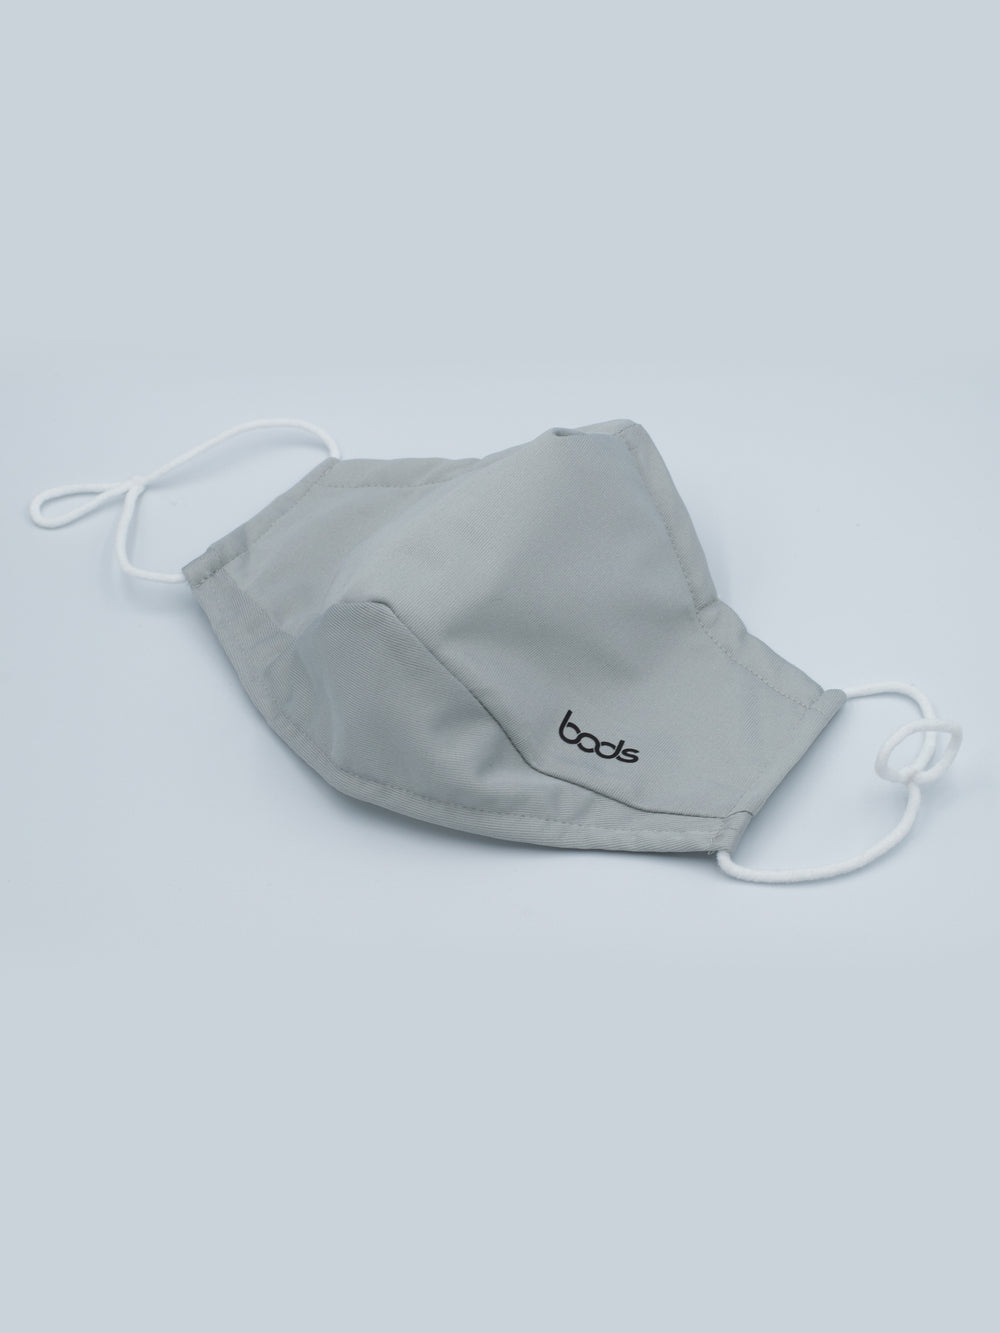 Reusable Face Mask (2 layers with adjustable straps) - A pack of 3 pcs